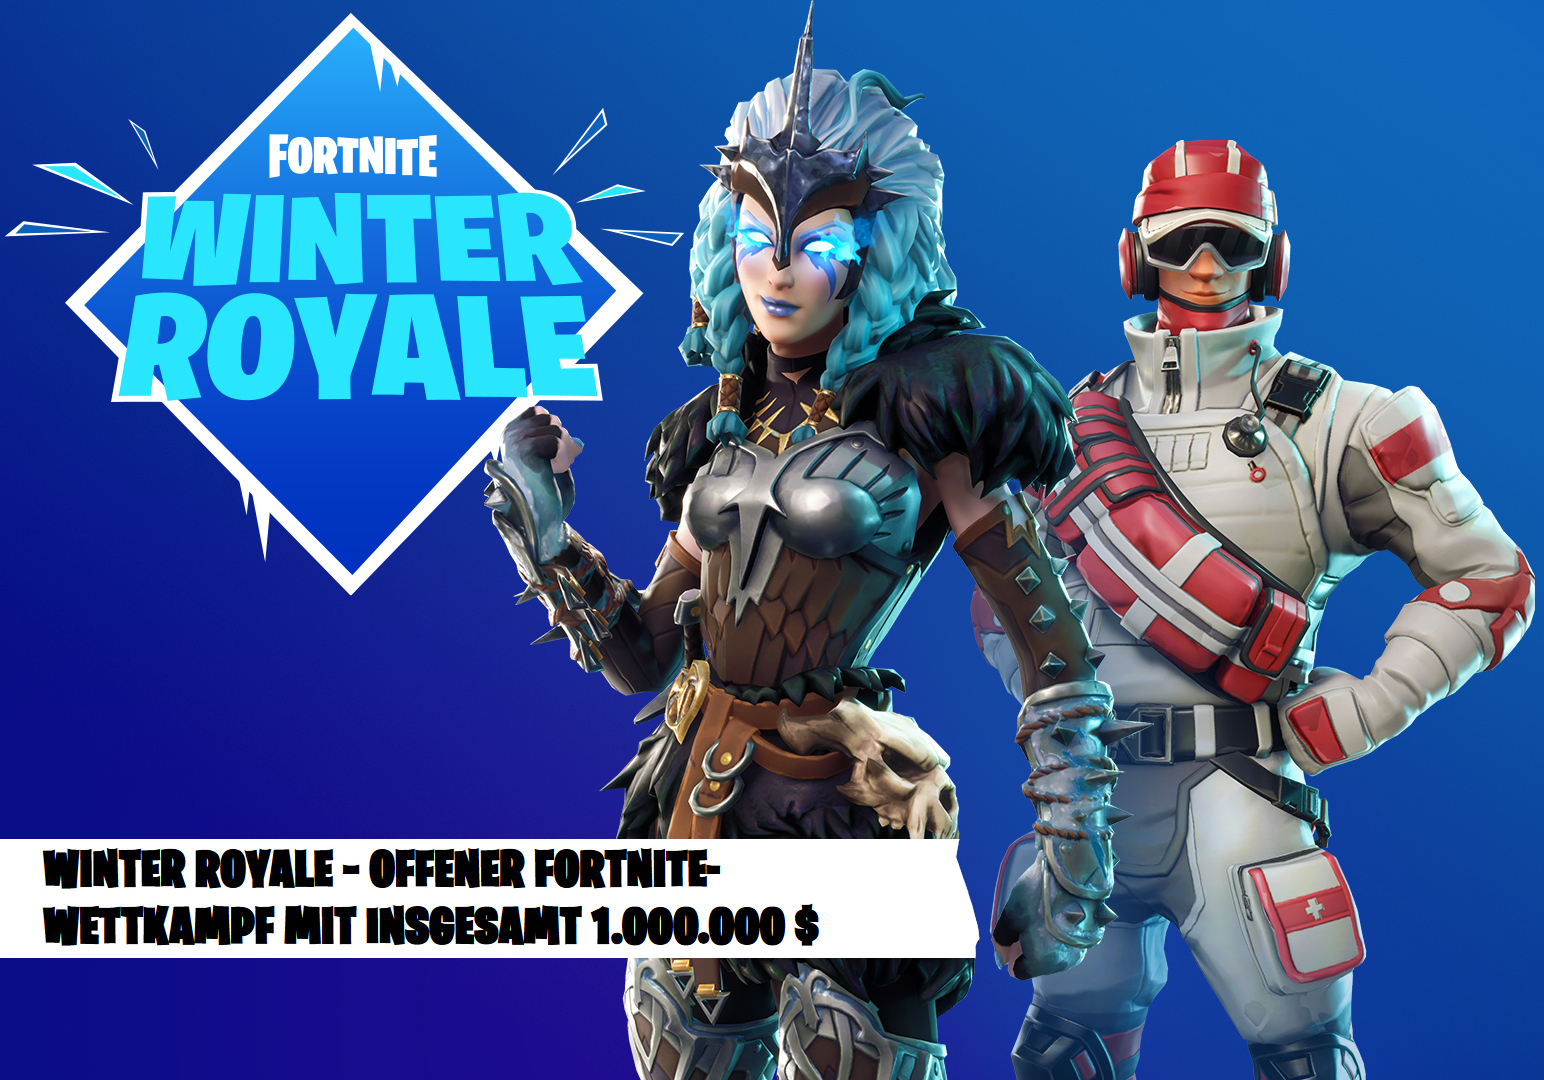 fortnite winter royale turnier mit 1 million preisgeld. Black Bedroom Furniture Sets. Home Design Ideas